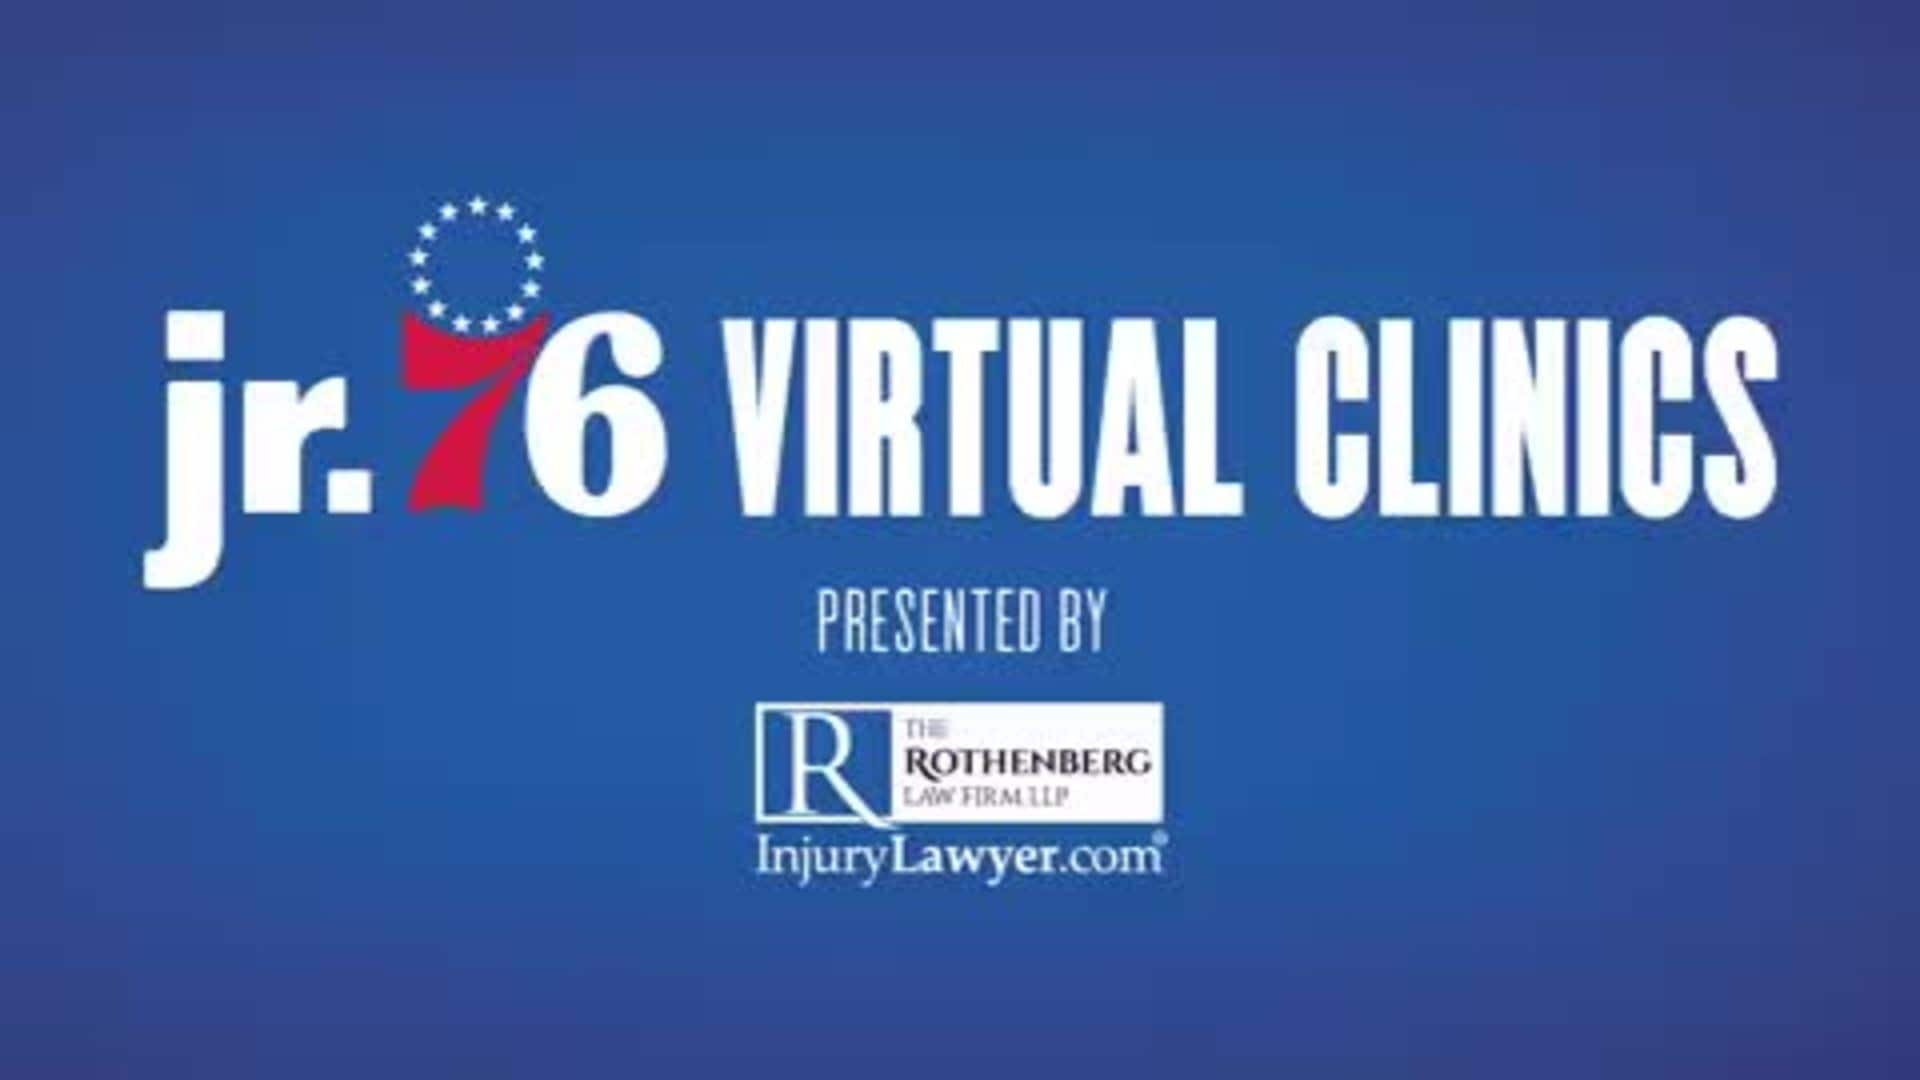 Jr. 76ers Virtual Clinic Presented by The Rothenberg Law Firm